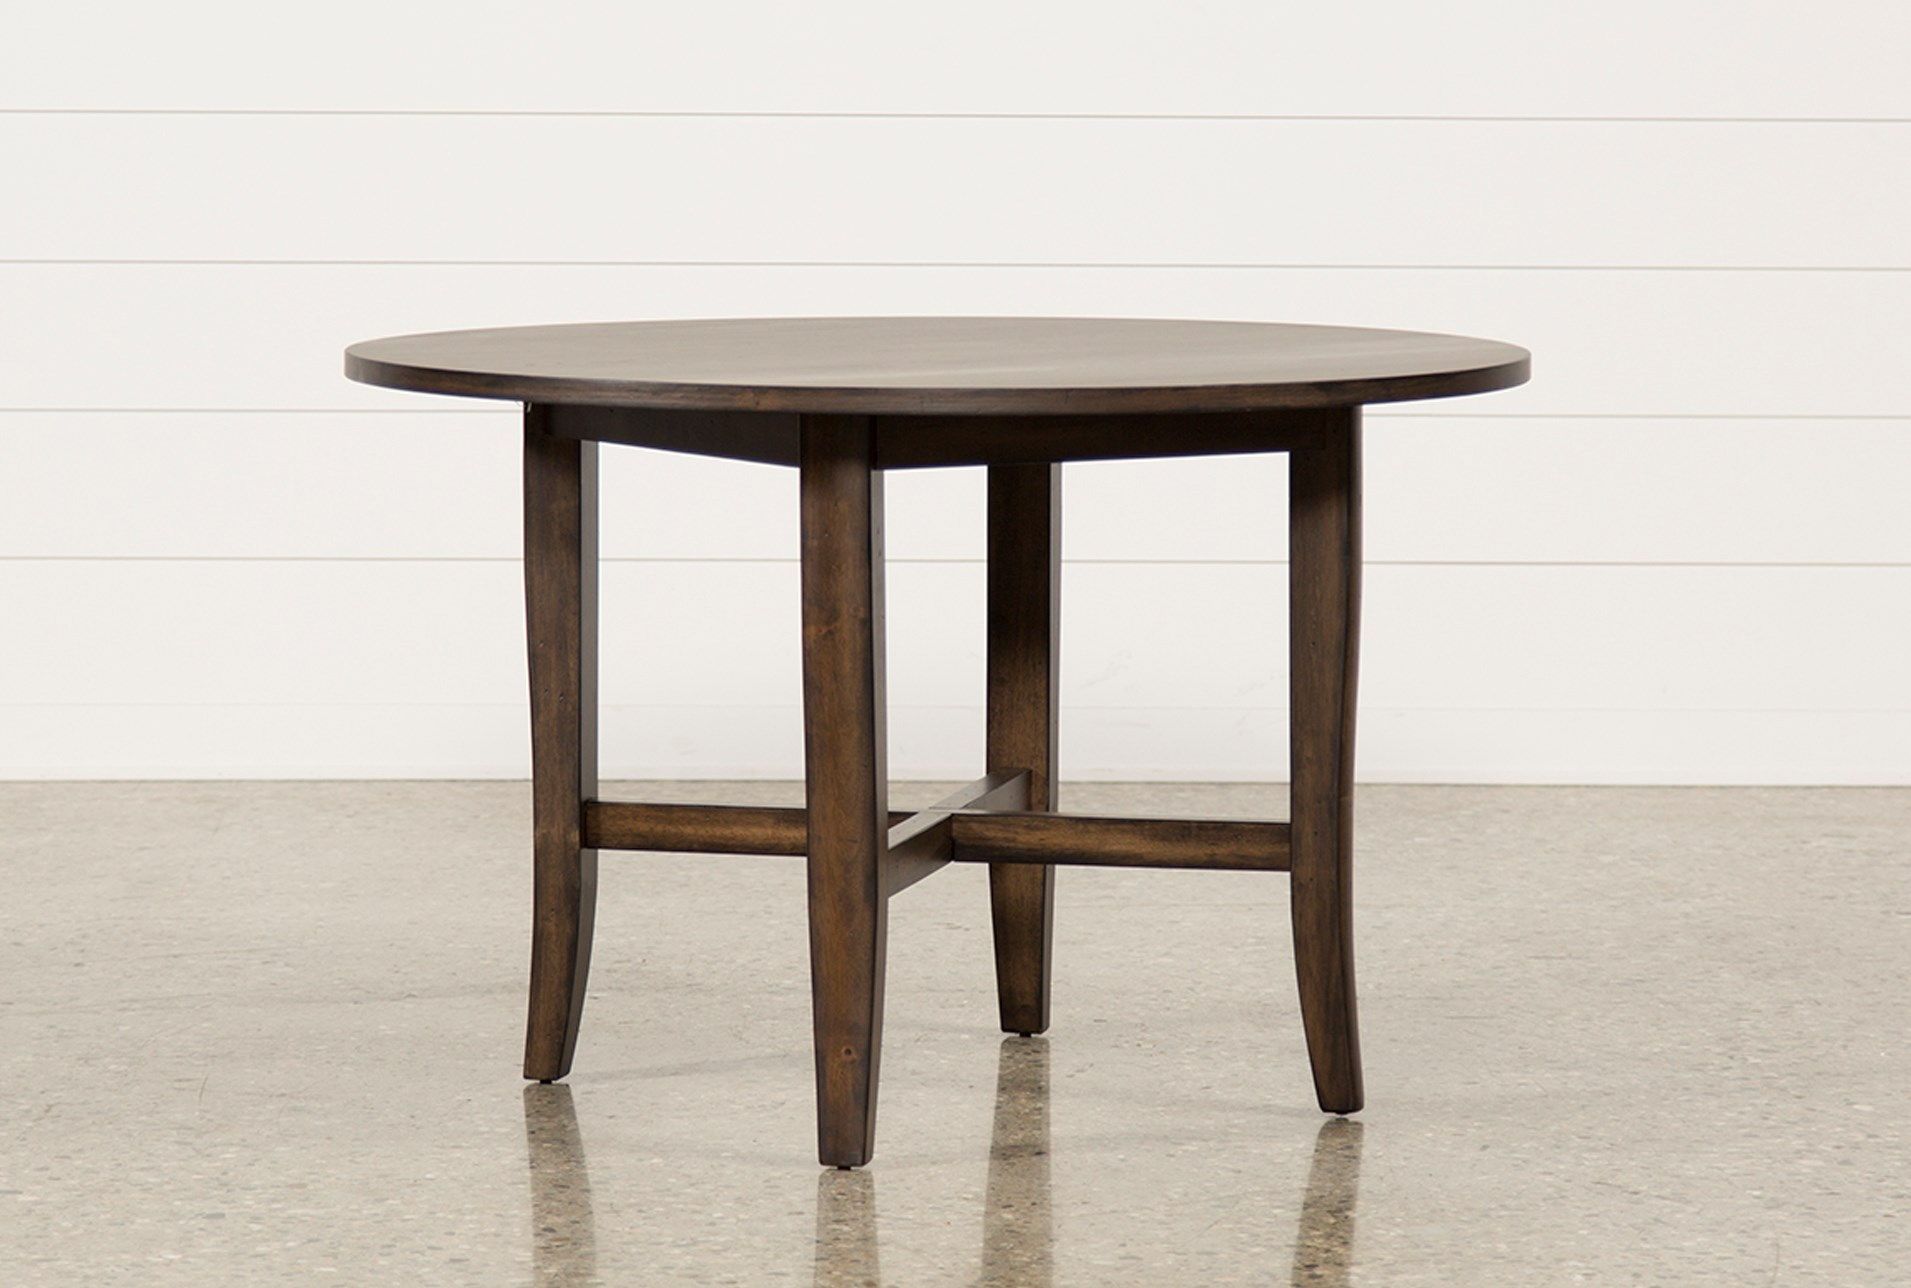 grady round dining table living spaces. Black Bedroom Furniture Sets. Home Design Ideas